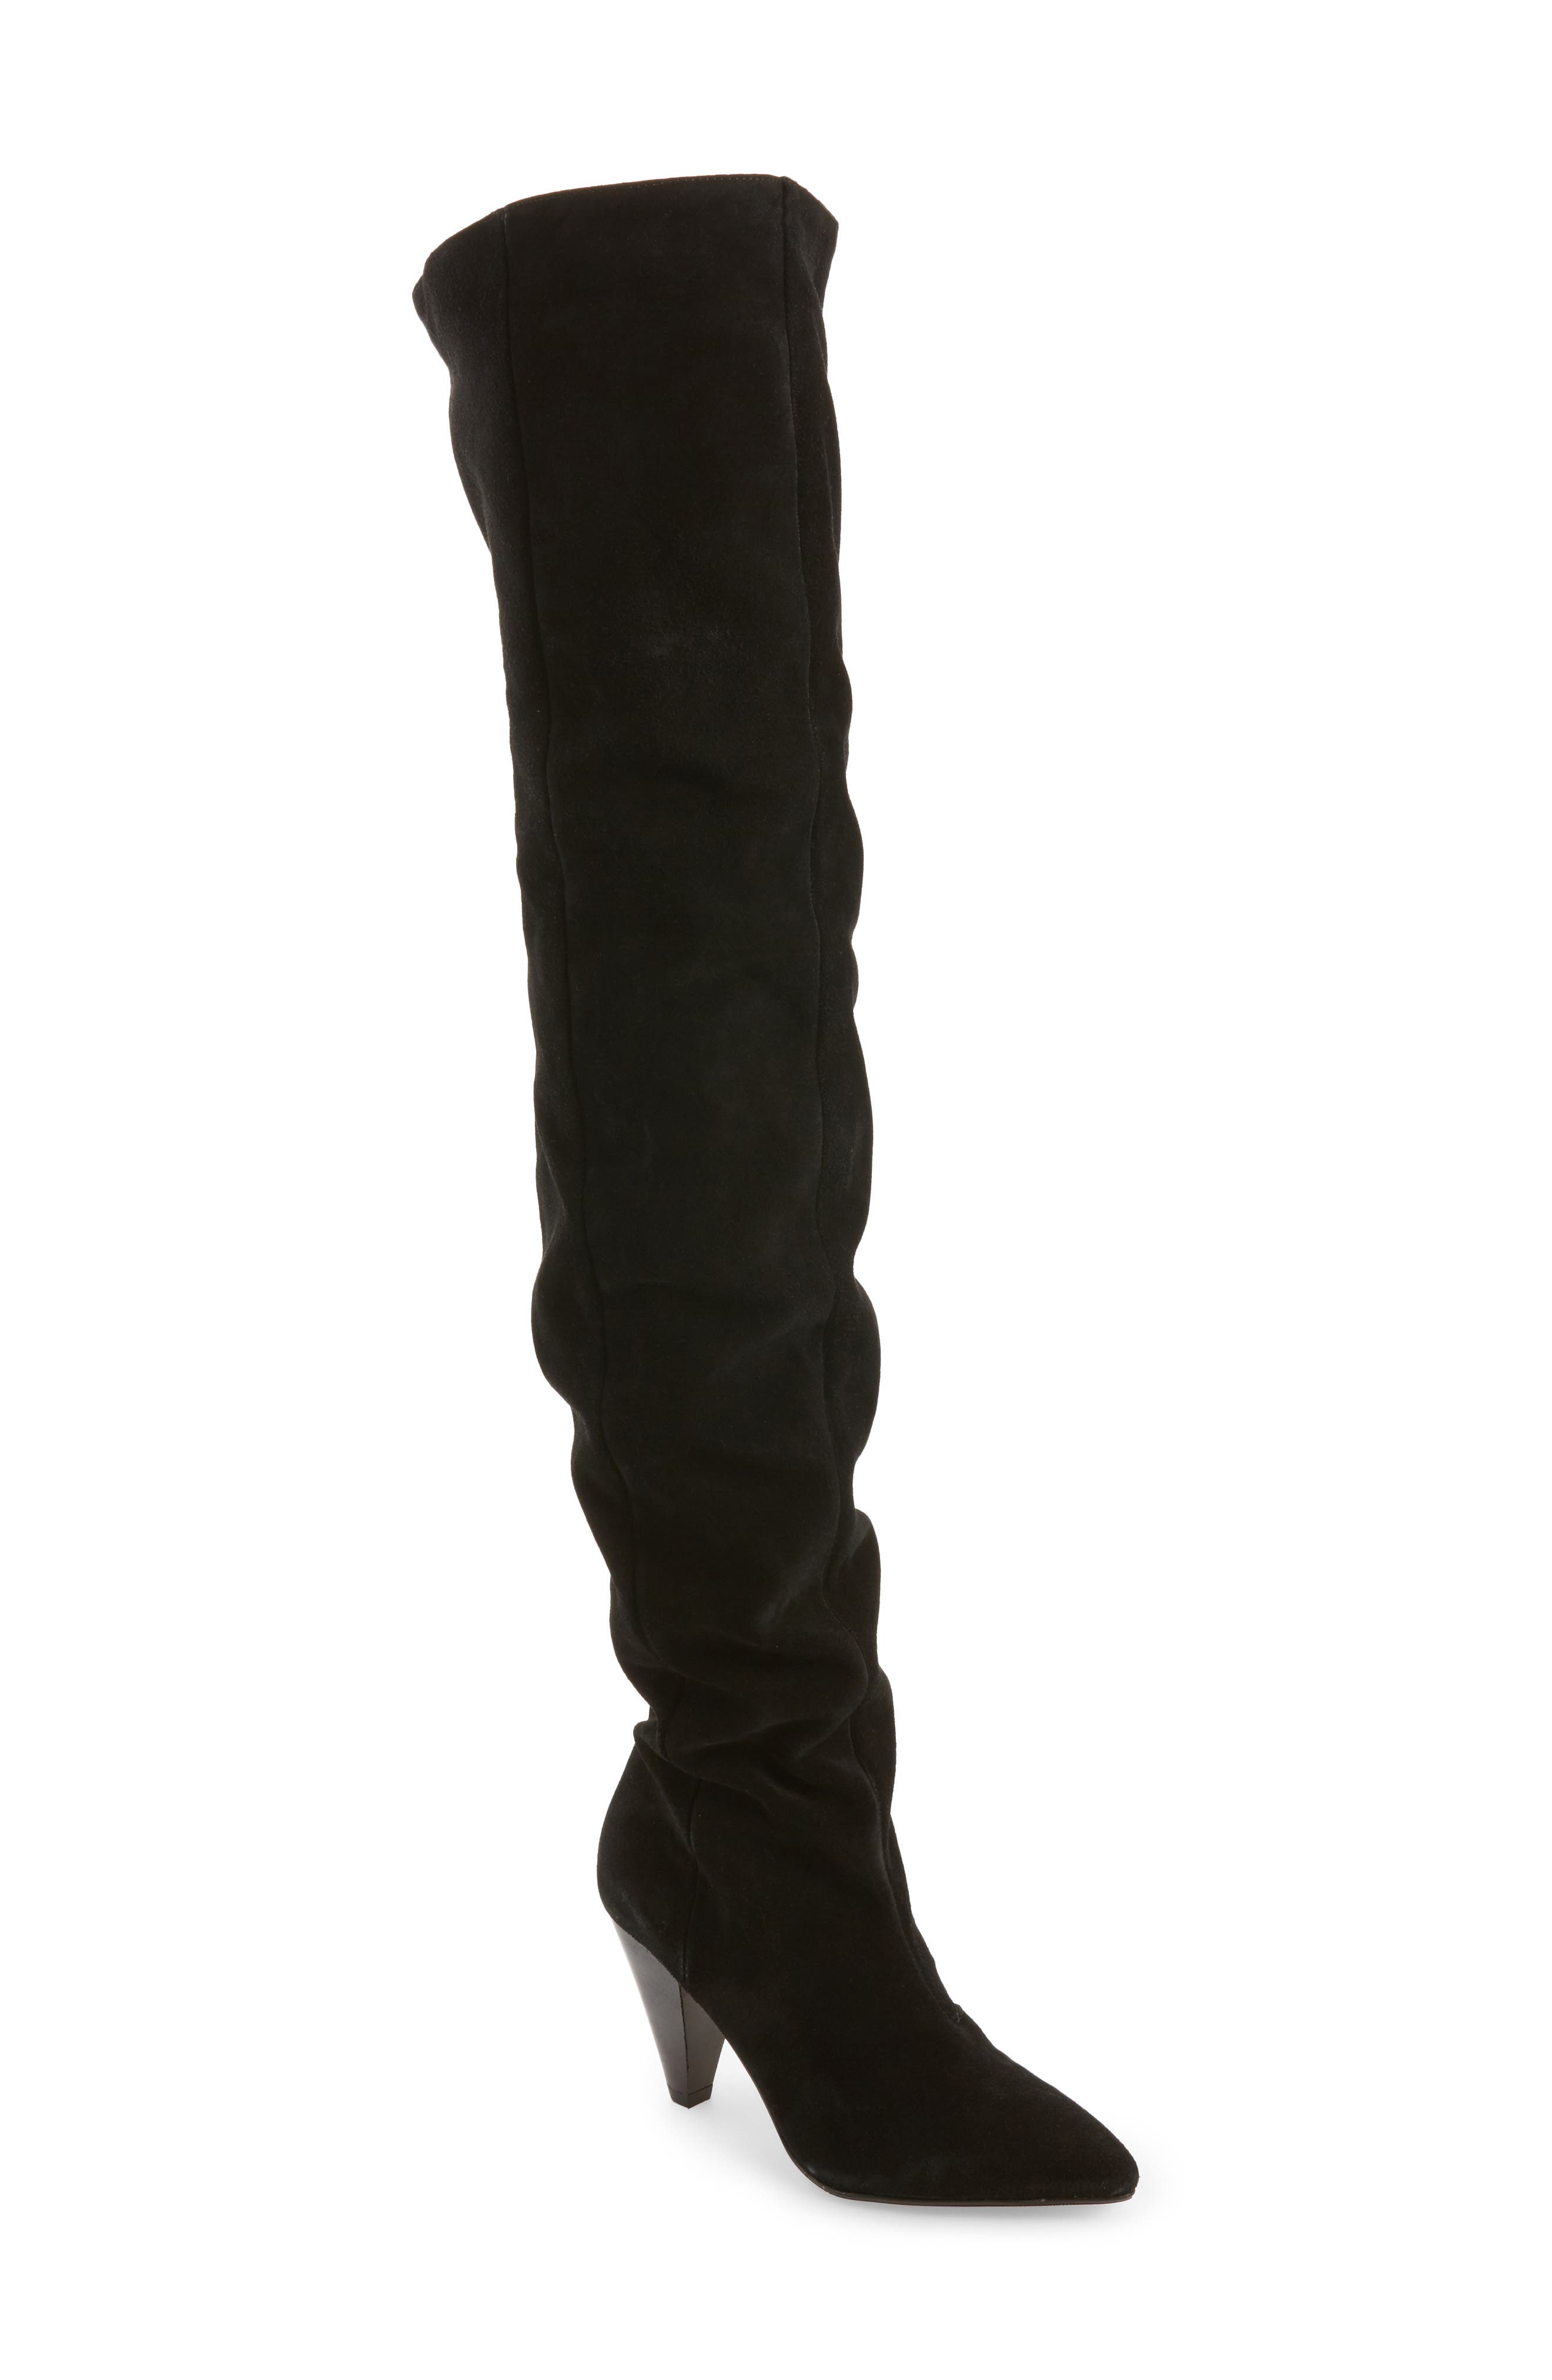 Alternate Image 1 Selected - Topshop Boxer Thigh High Boots (Women)